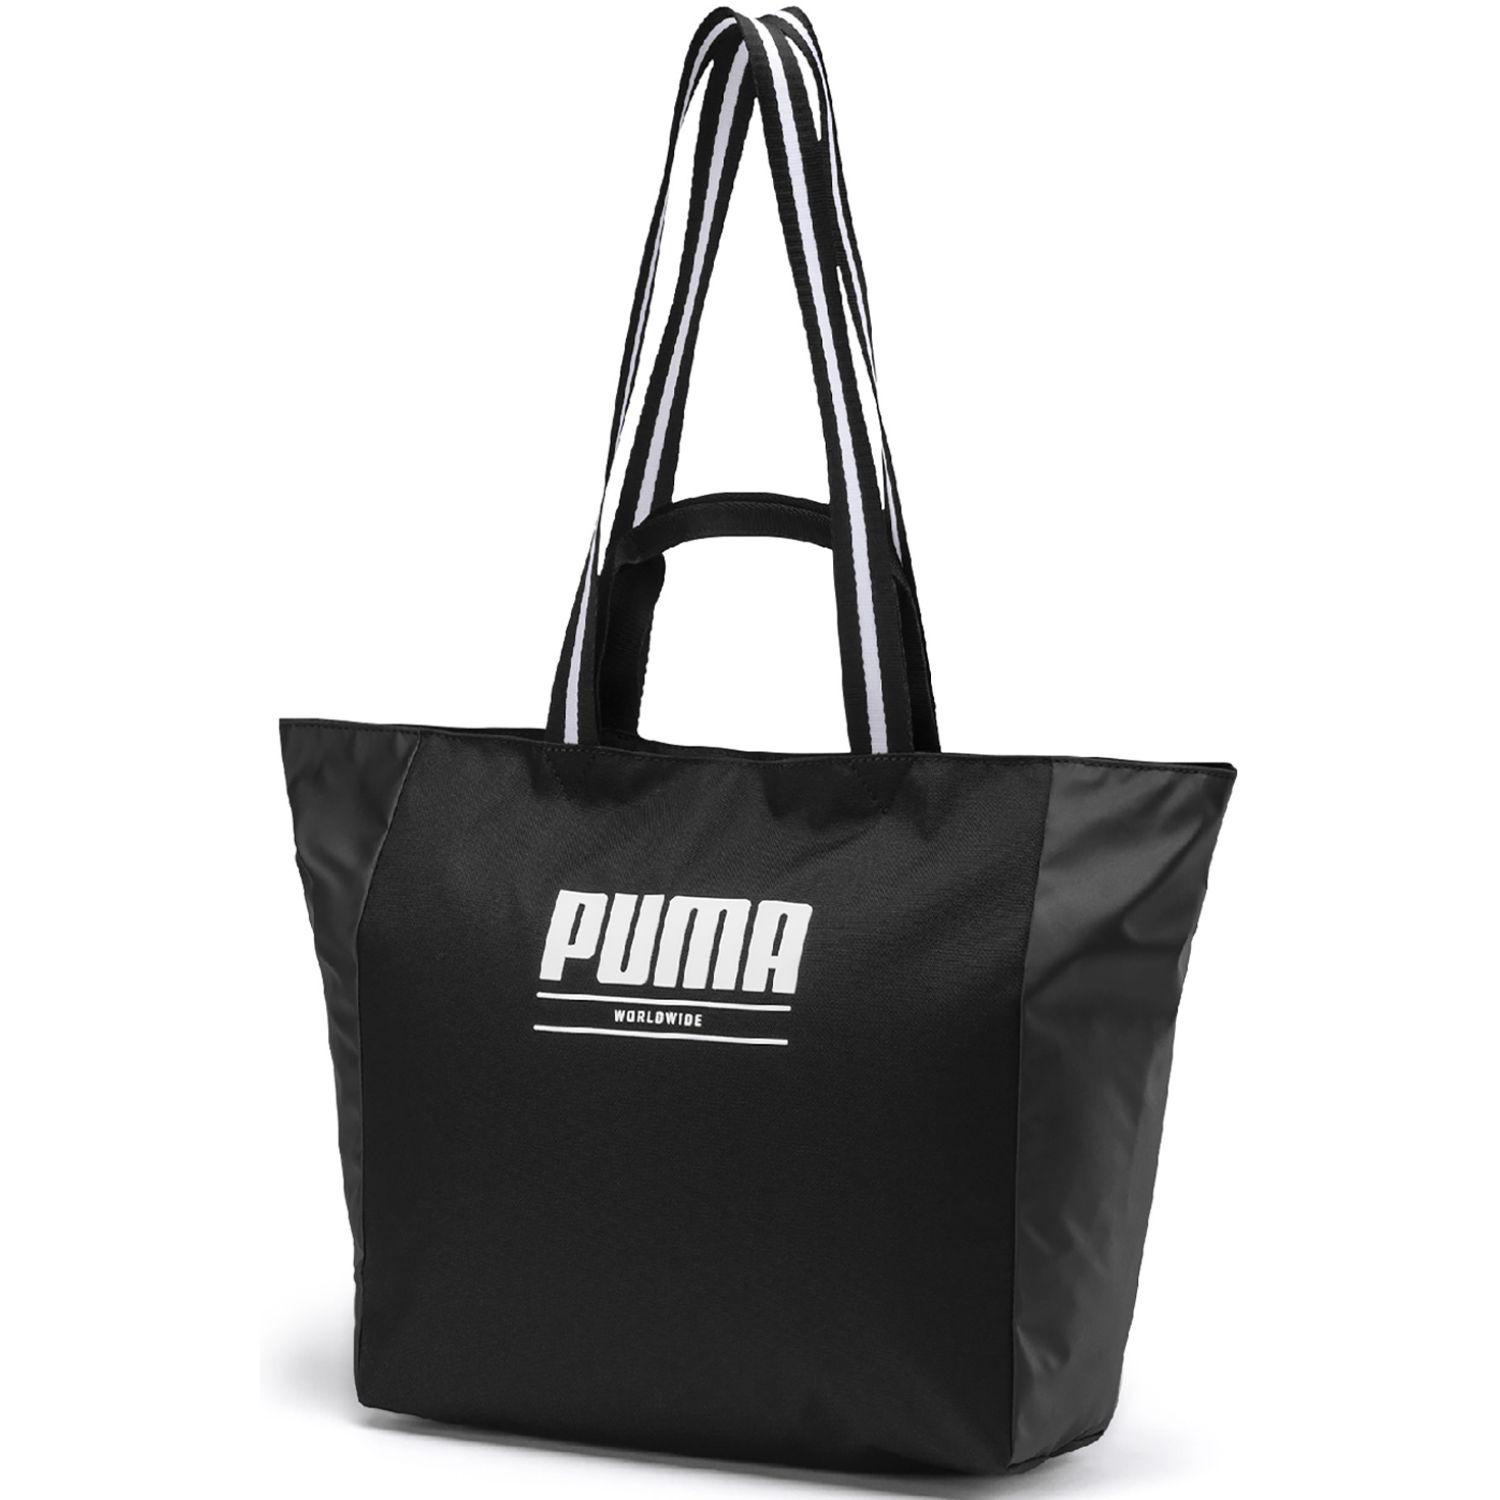 Bolsos de Mujer Puma Negro wmn core base large shopper